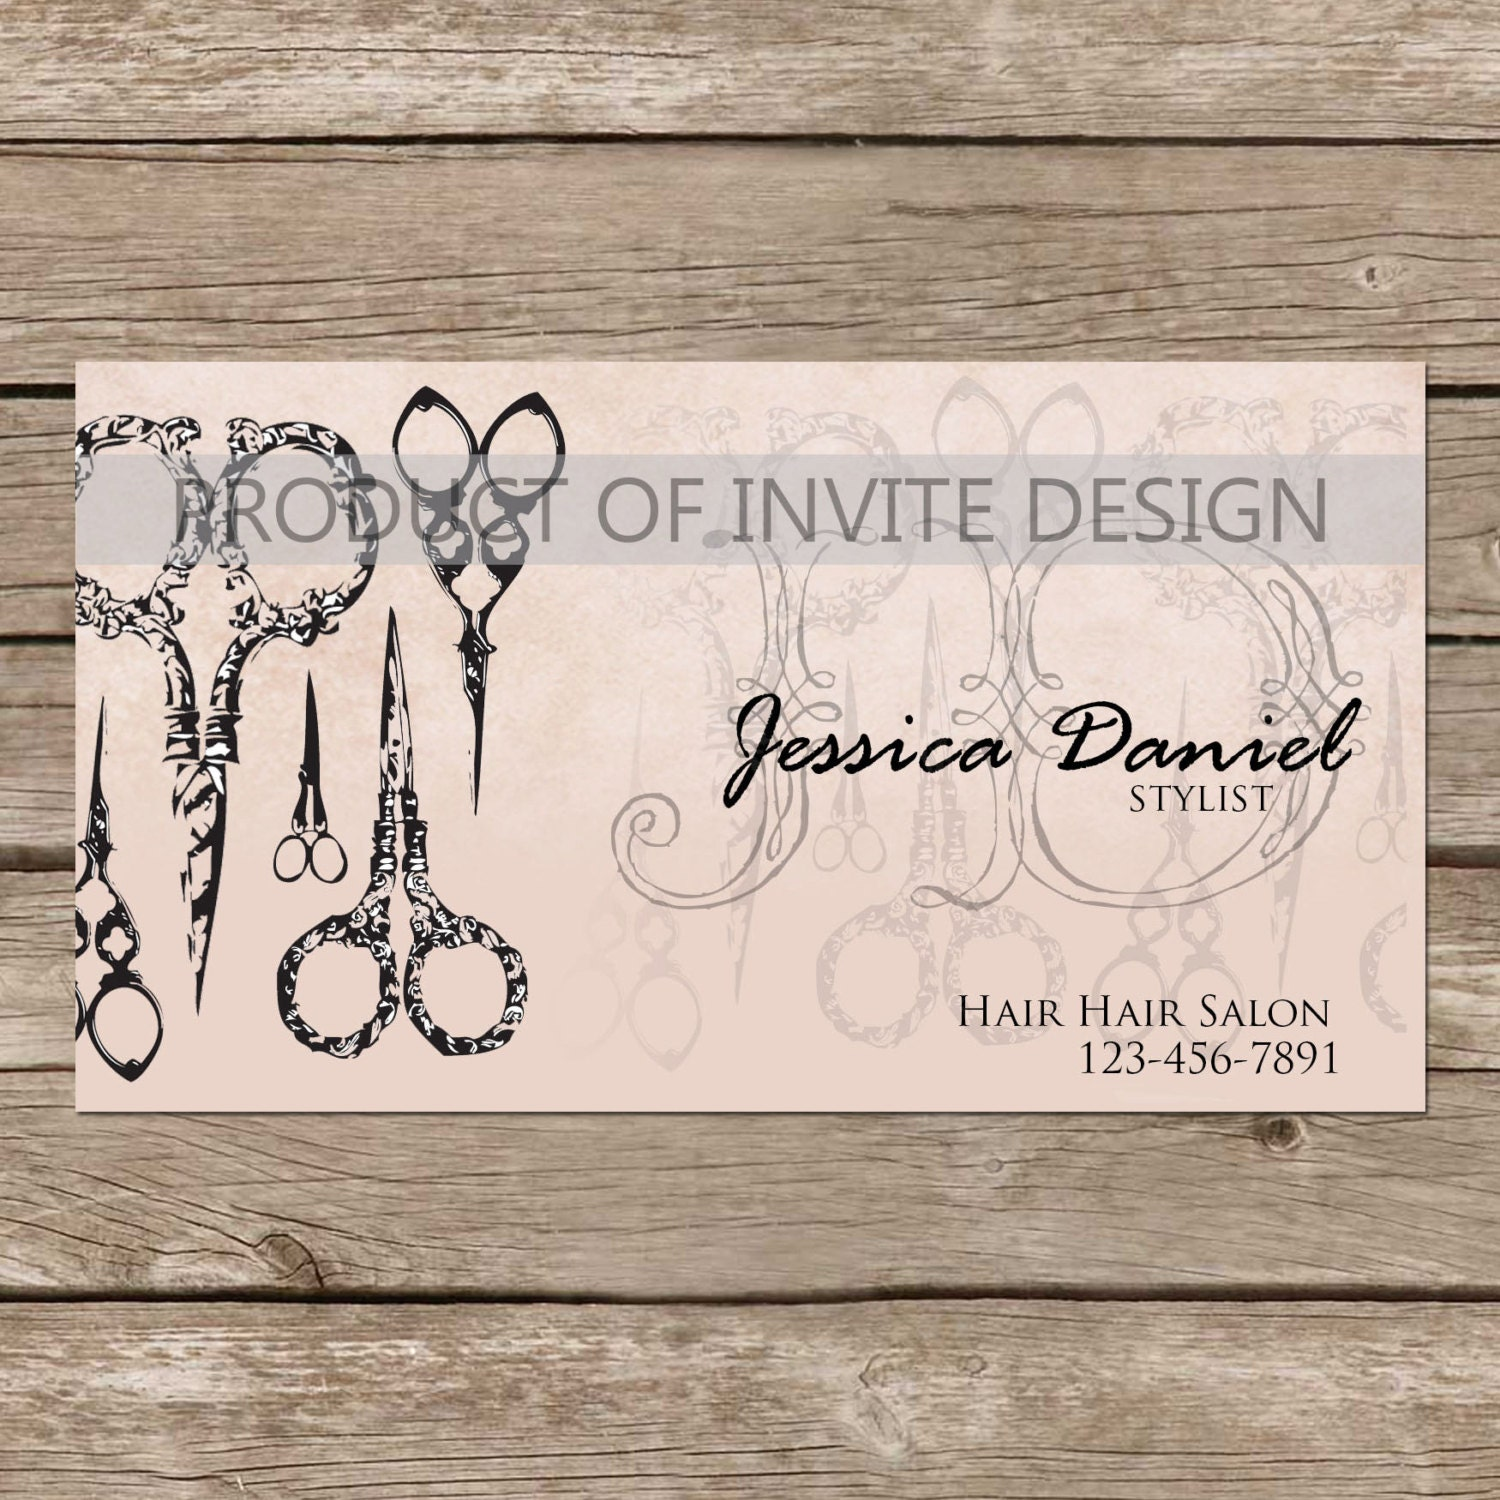 Unusual Hairstylist Business Cards Images - Business Card Ideas ...